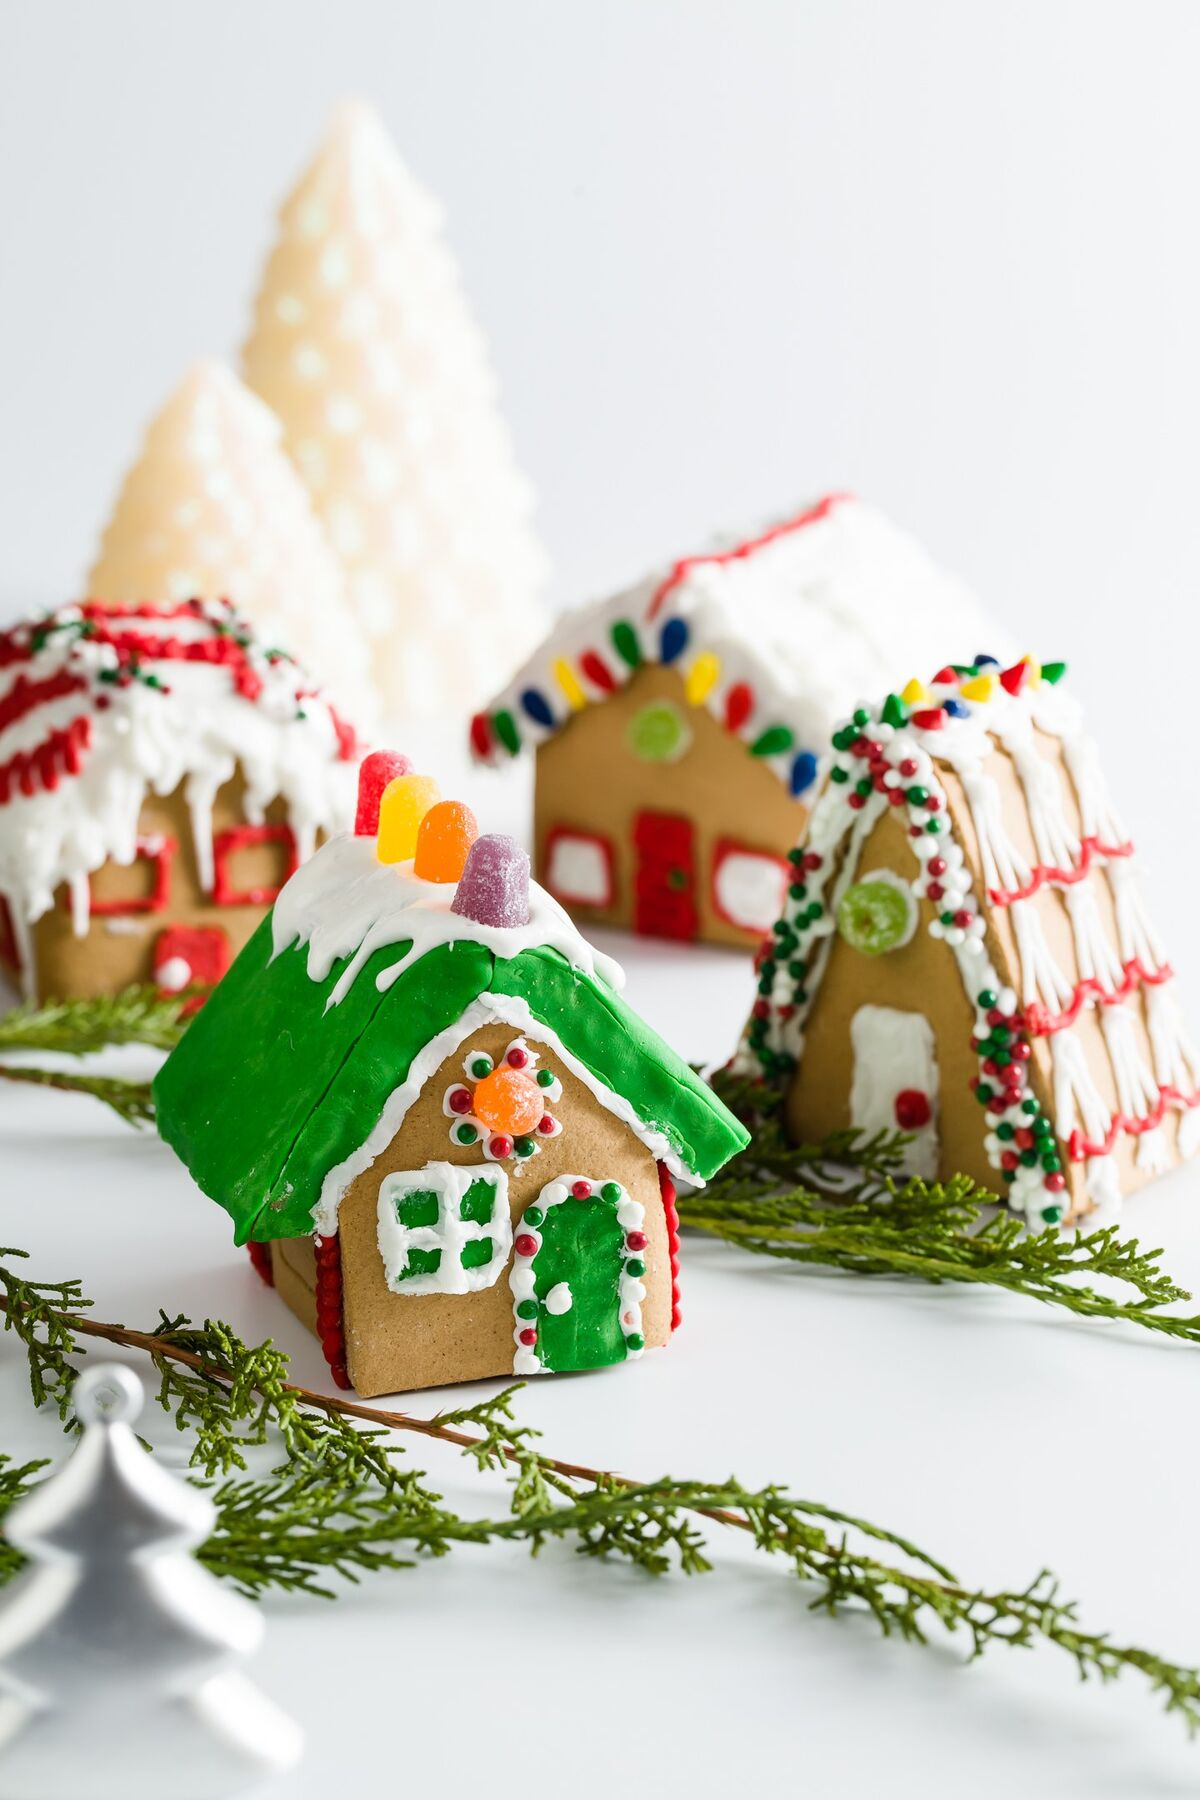 Easy Gingerbread House Kit